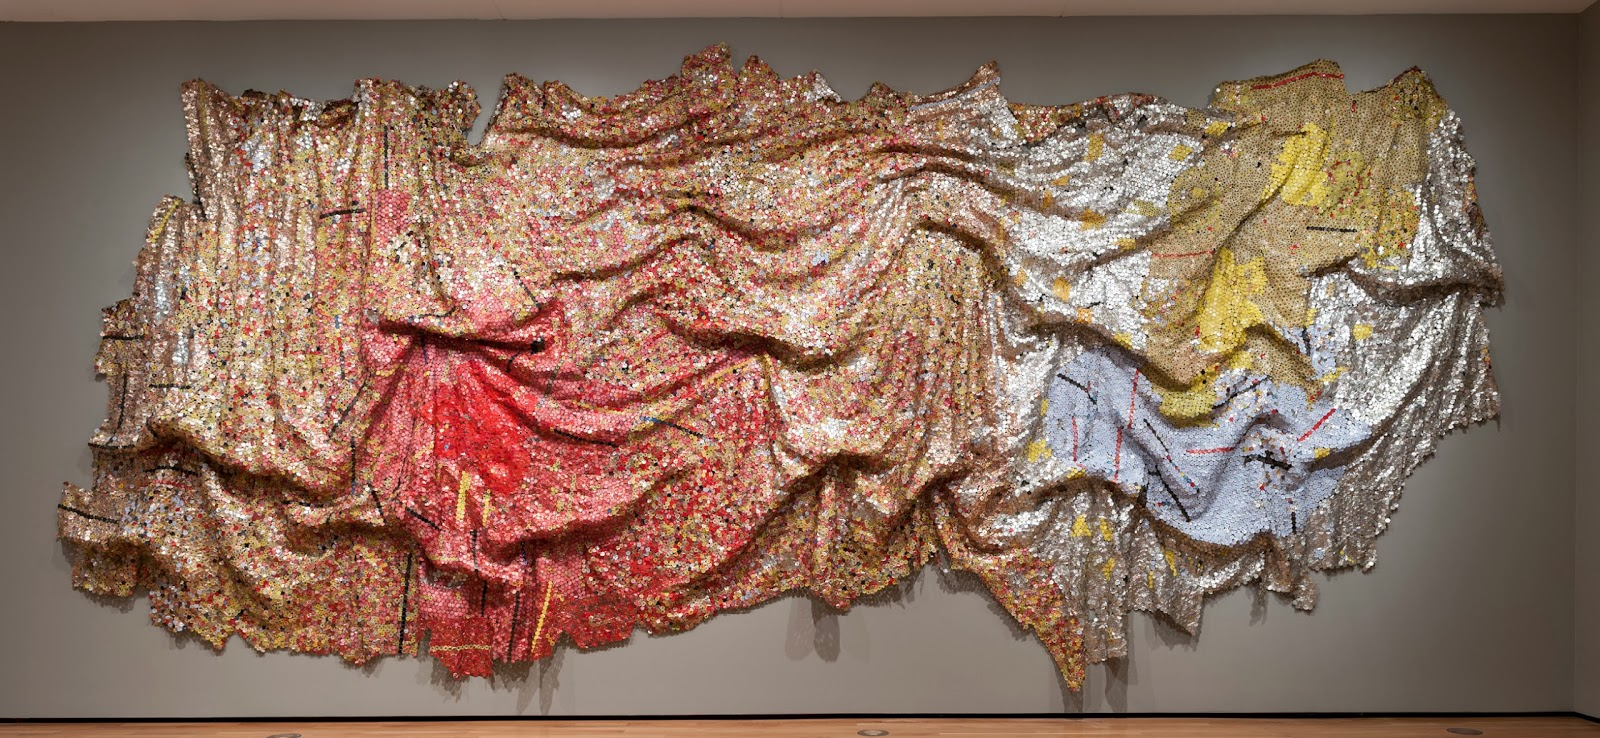 Color, Scale, Texture, And Sweeping Movement What Looks Like Luxurious  Folds Of Cloth Is Actually Sculpture Made From Bottle Caps—sculpture That  Can Be